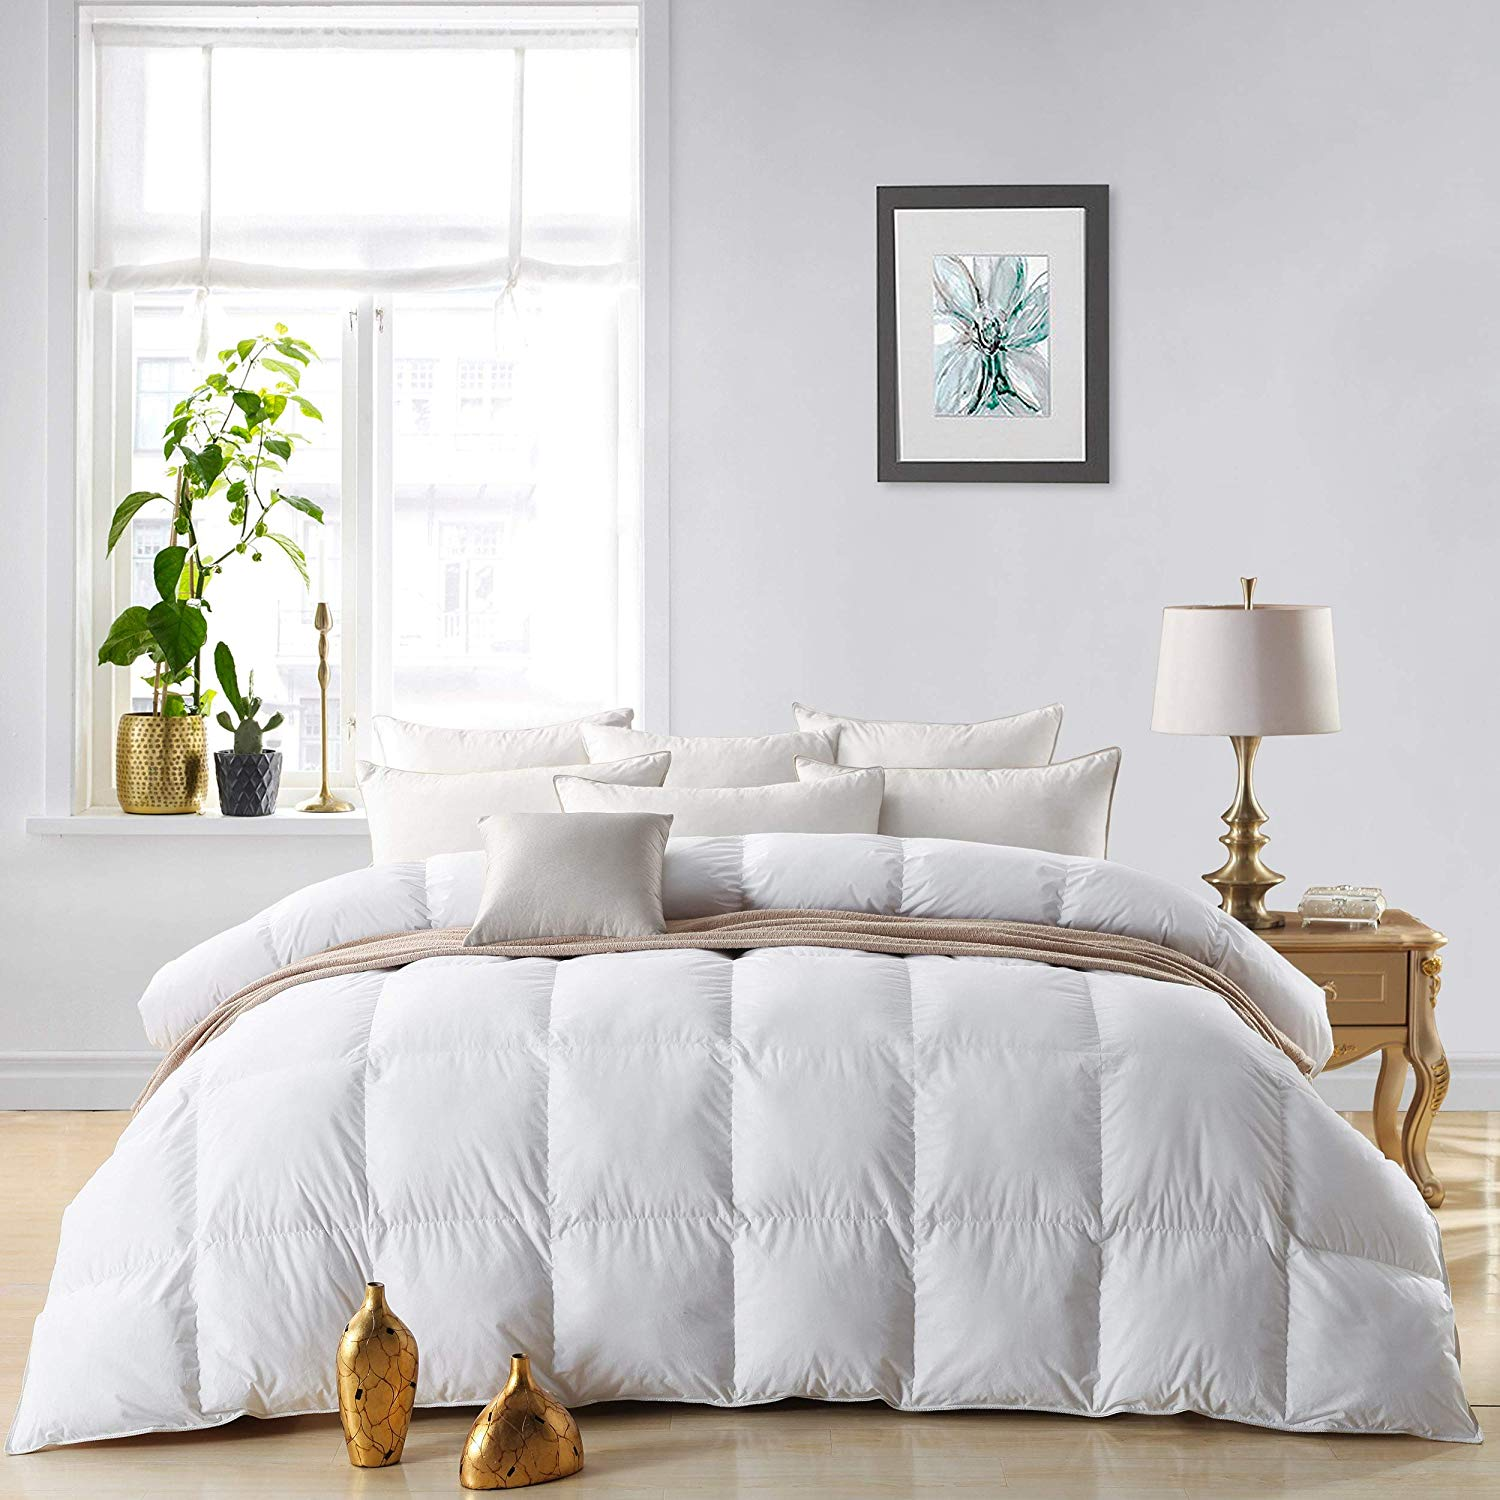 Egyptian Bedding Best Comforter Review by www.snoremagazine.com